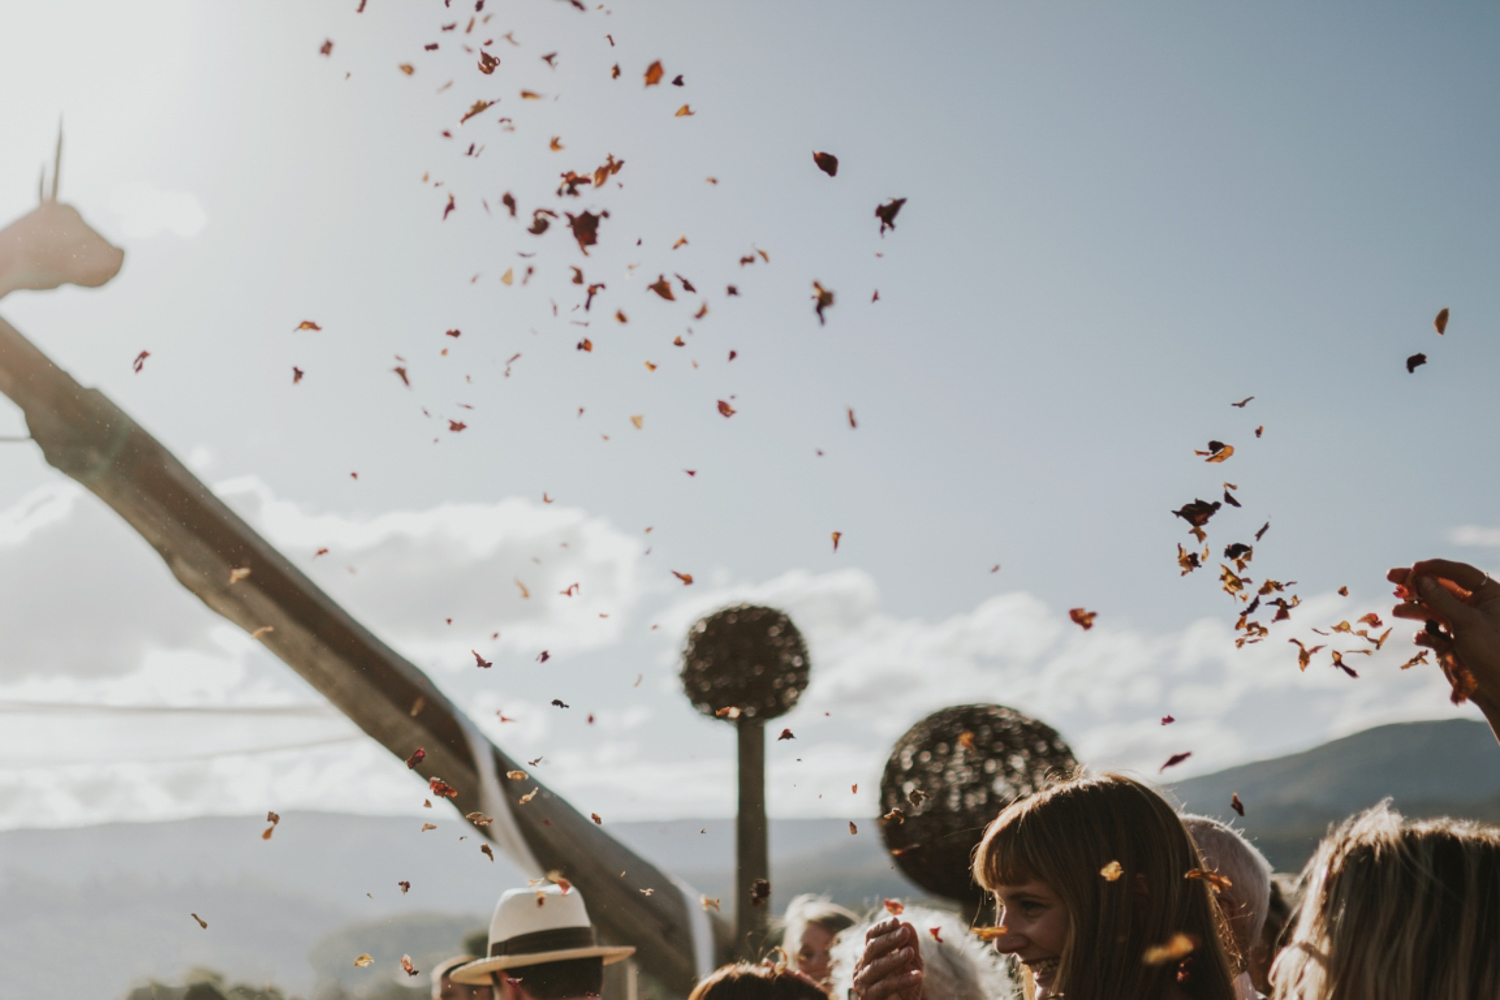 petal confetti is thrown in to the air after a wedding ceremony at willie smiths apple shed.